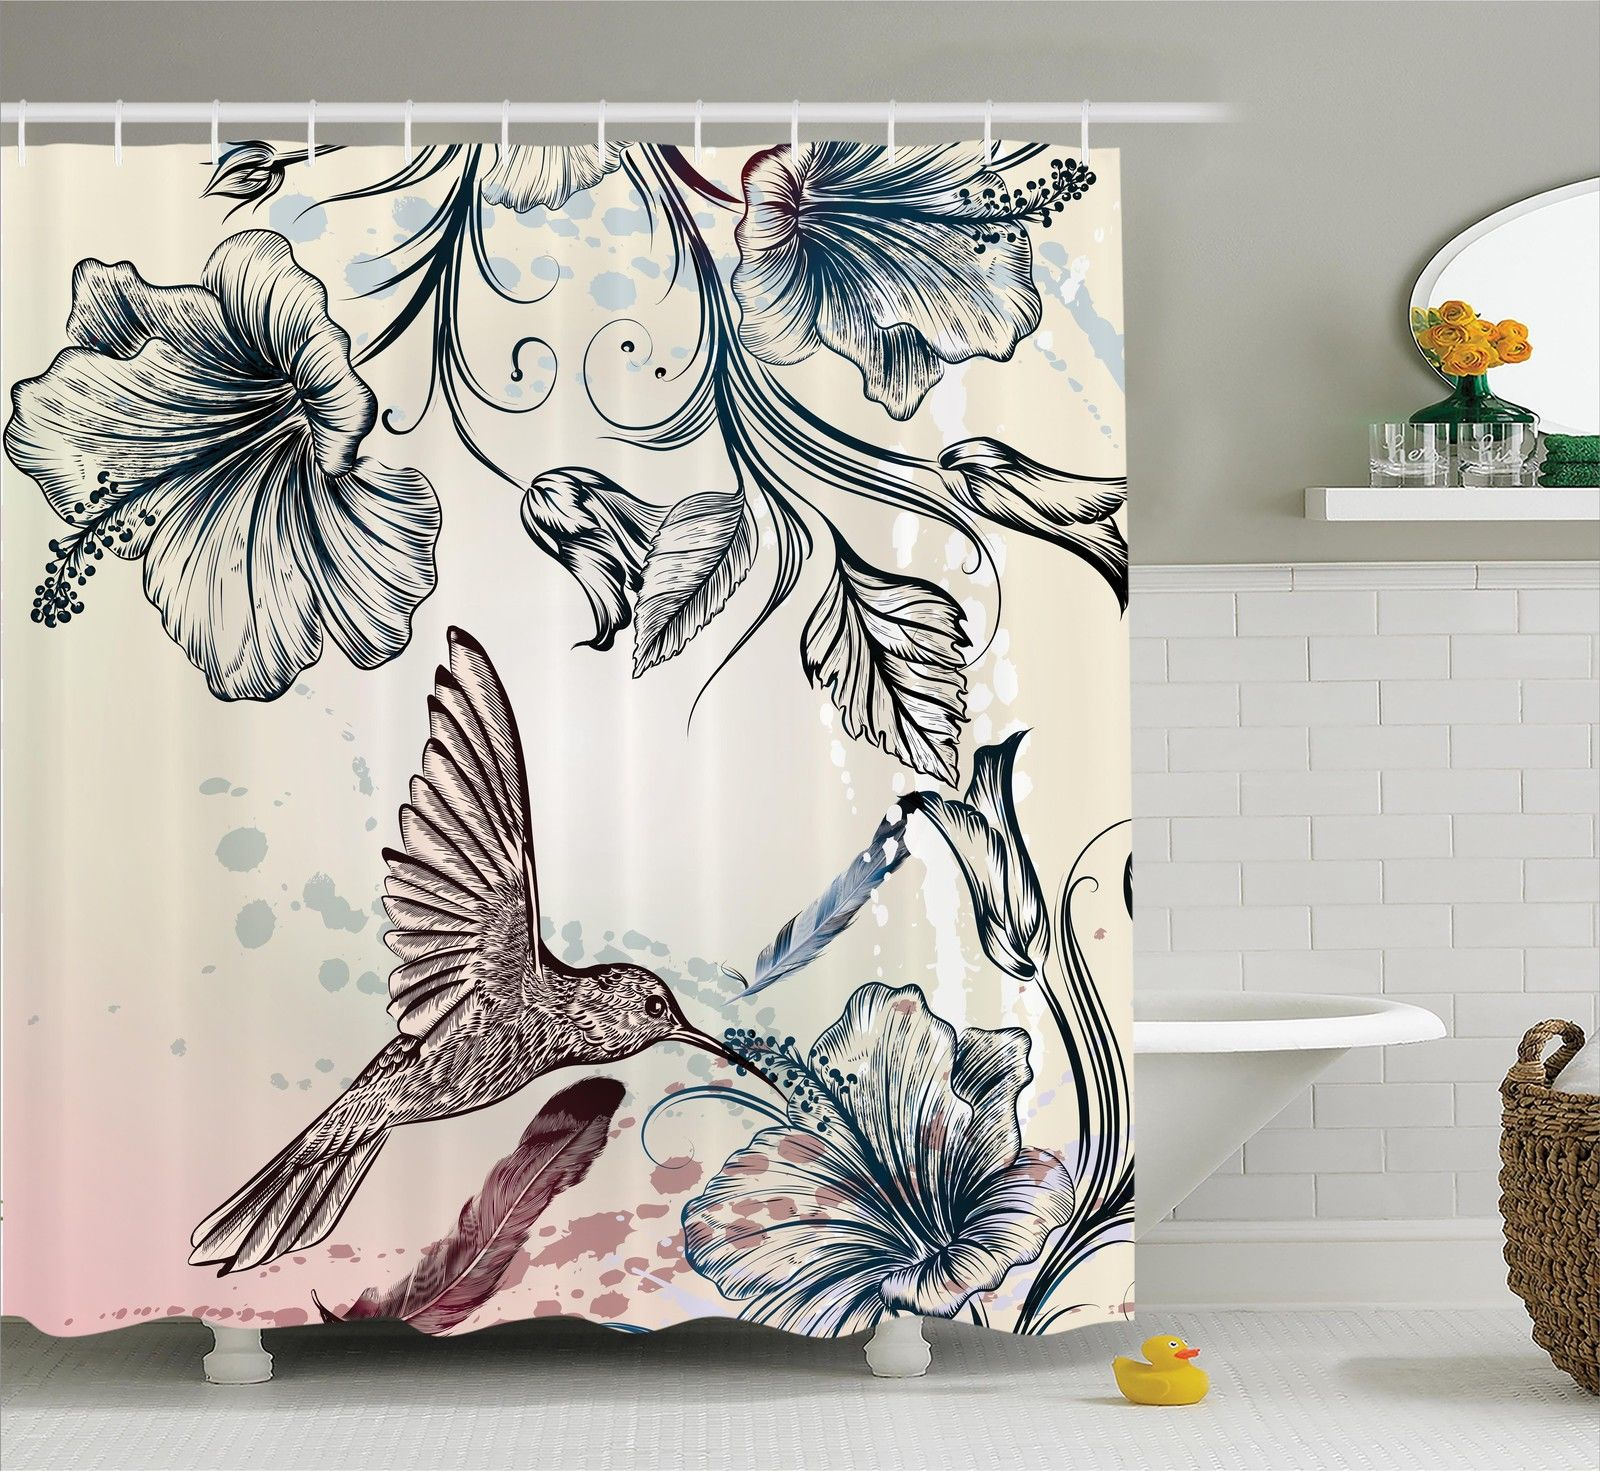 Hummingbirds Decorations  Floral Art In Vintage Style With Hummingbird Hibiscus Flowers And Feathers, Bathroom Accessories, 69W X 84L Inches Extra Long, By Ambesonne